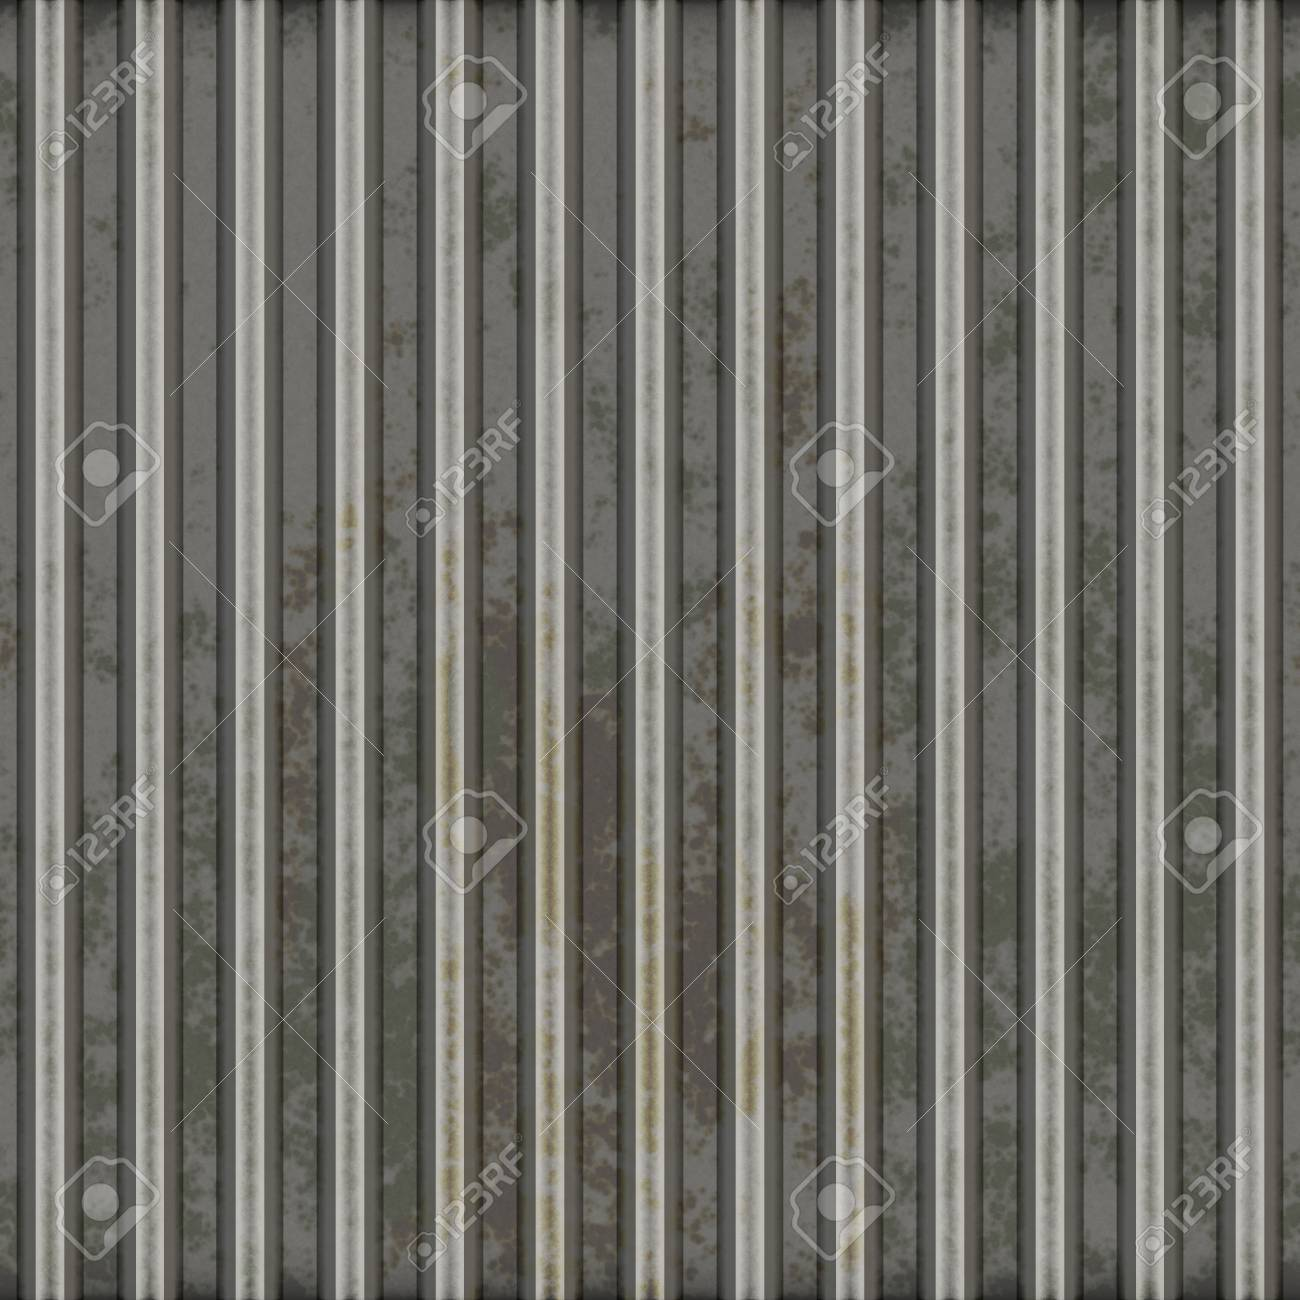 Corrugated metal surface with corrosion seamless texture Stock Photo - 5641605